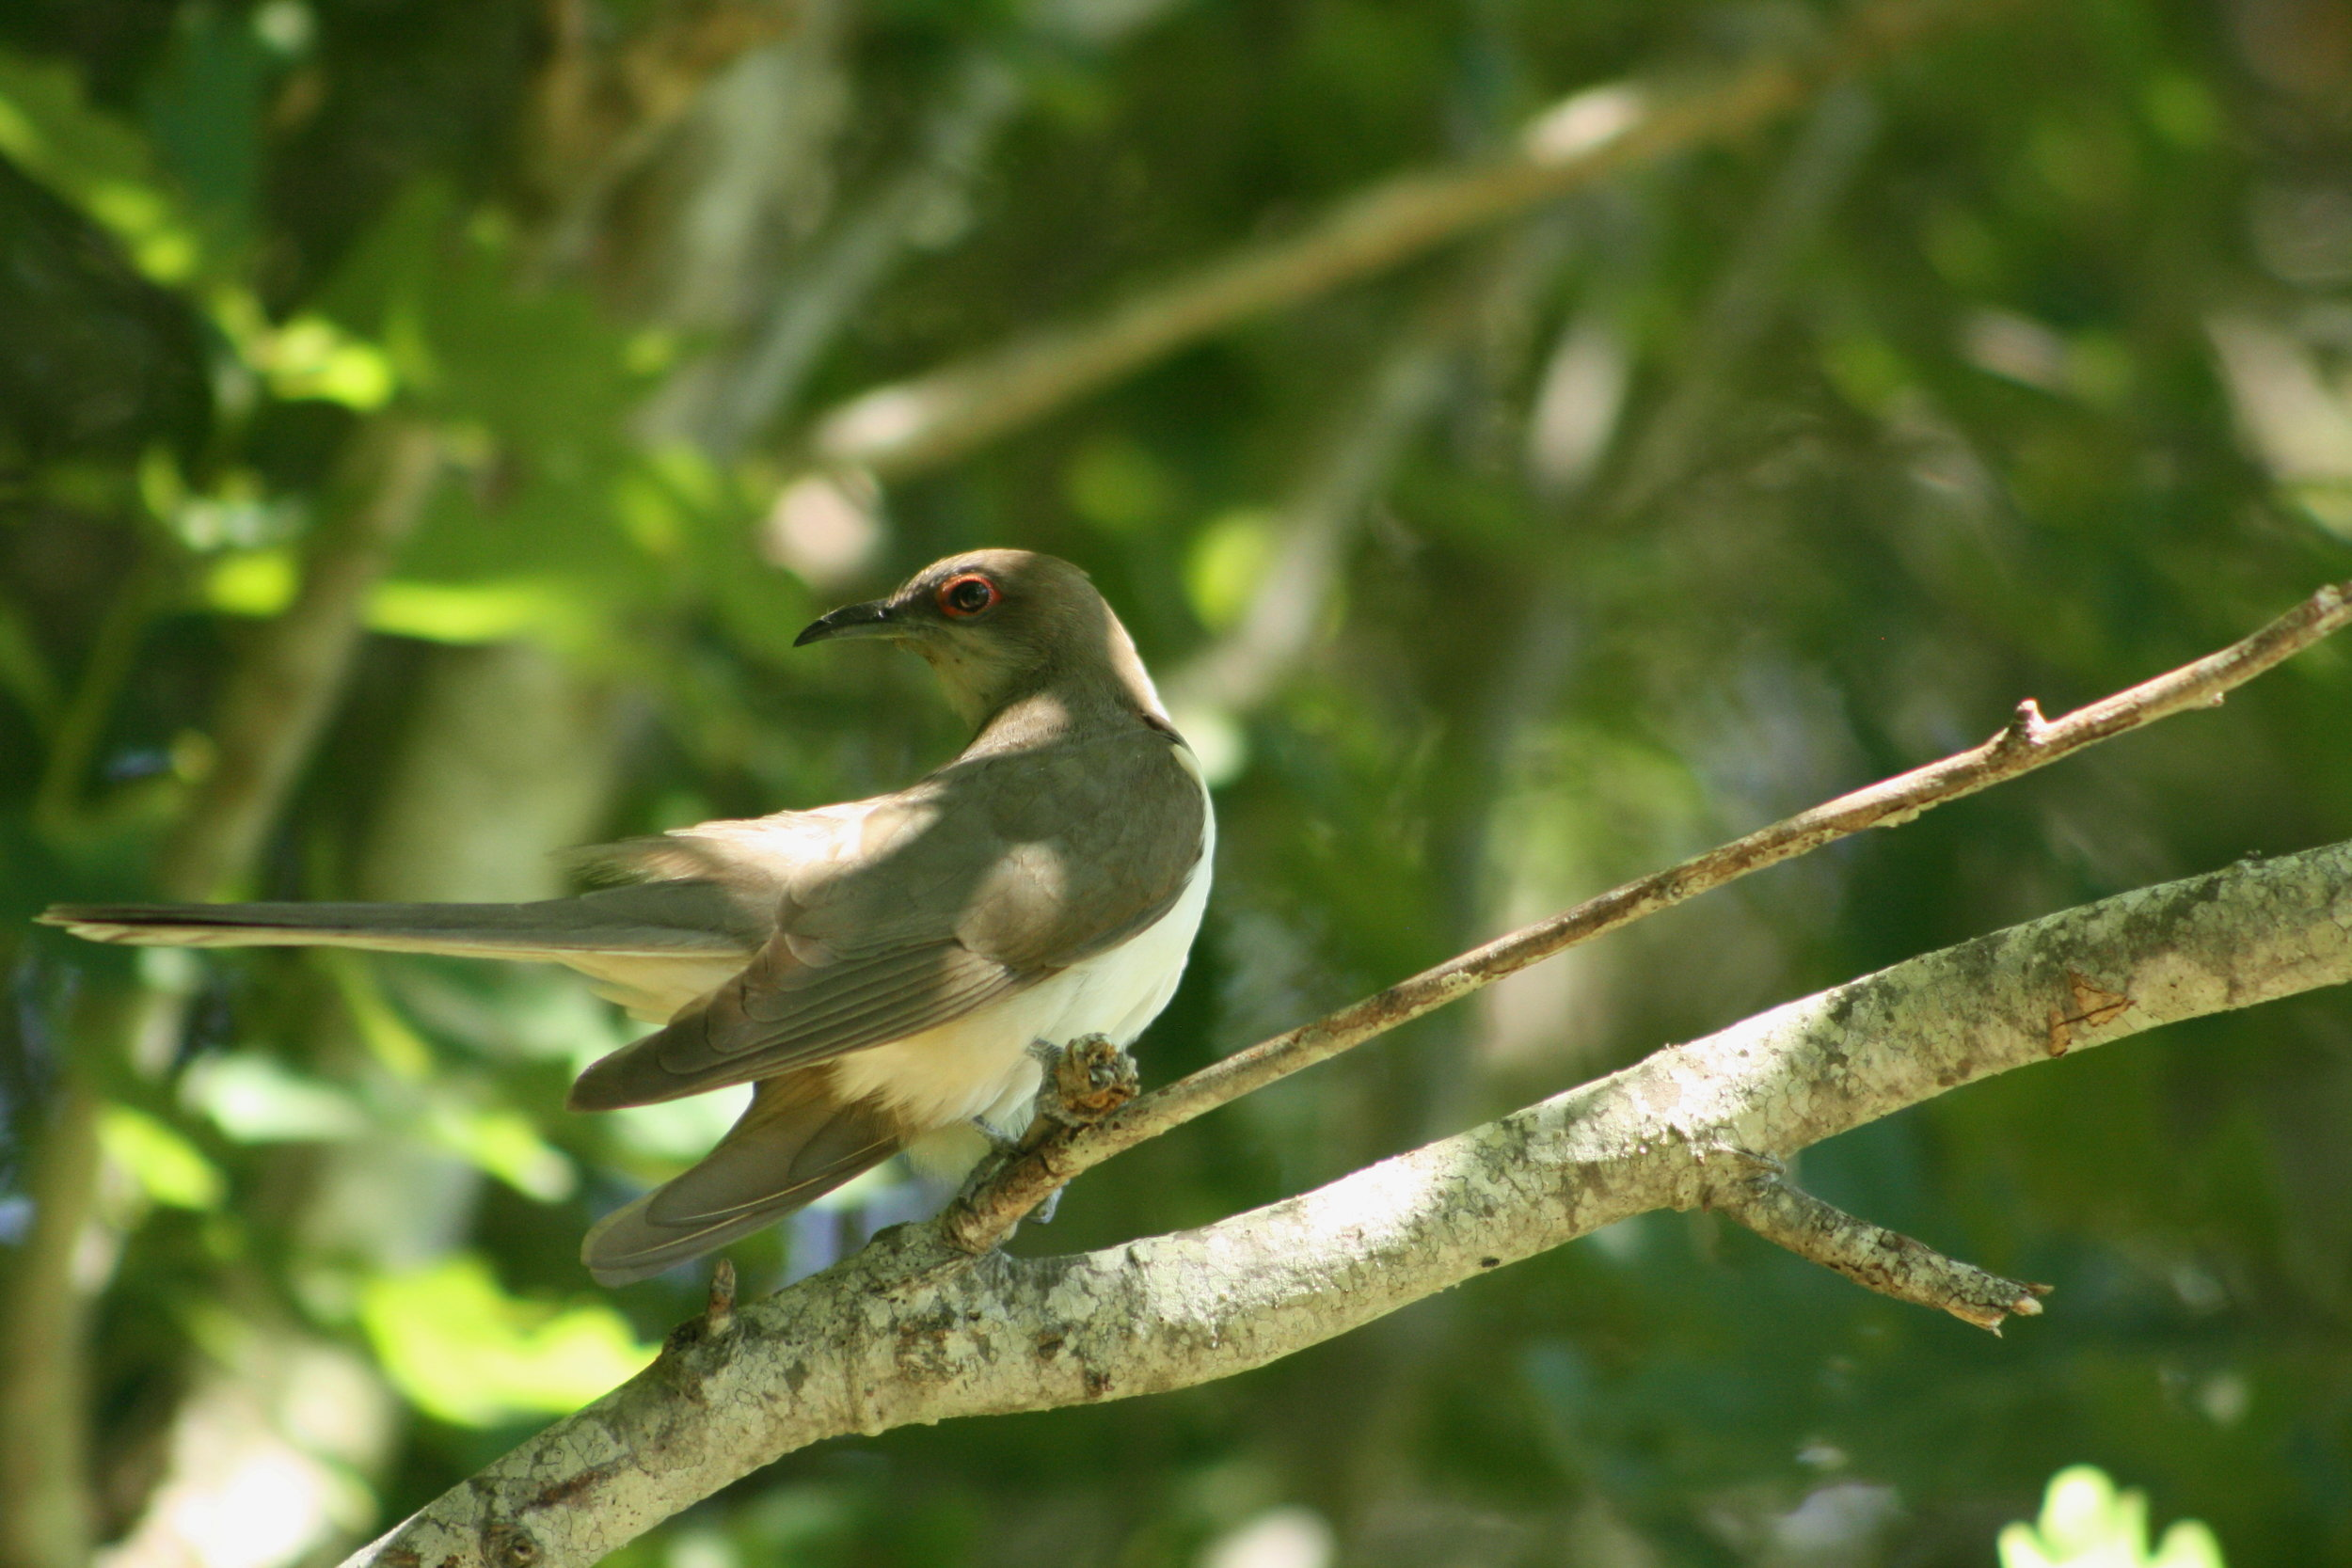 2017_07_04_black-billed cuckoo_img_6899_cr_cjackson.jpg